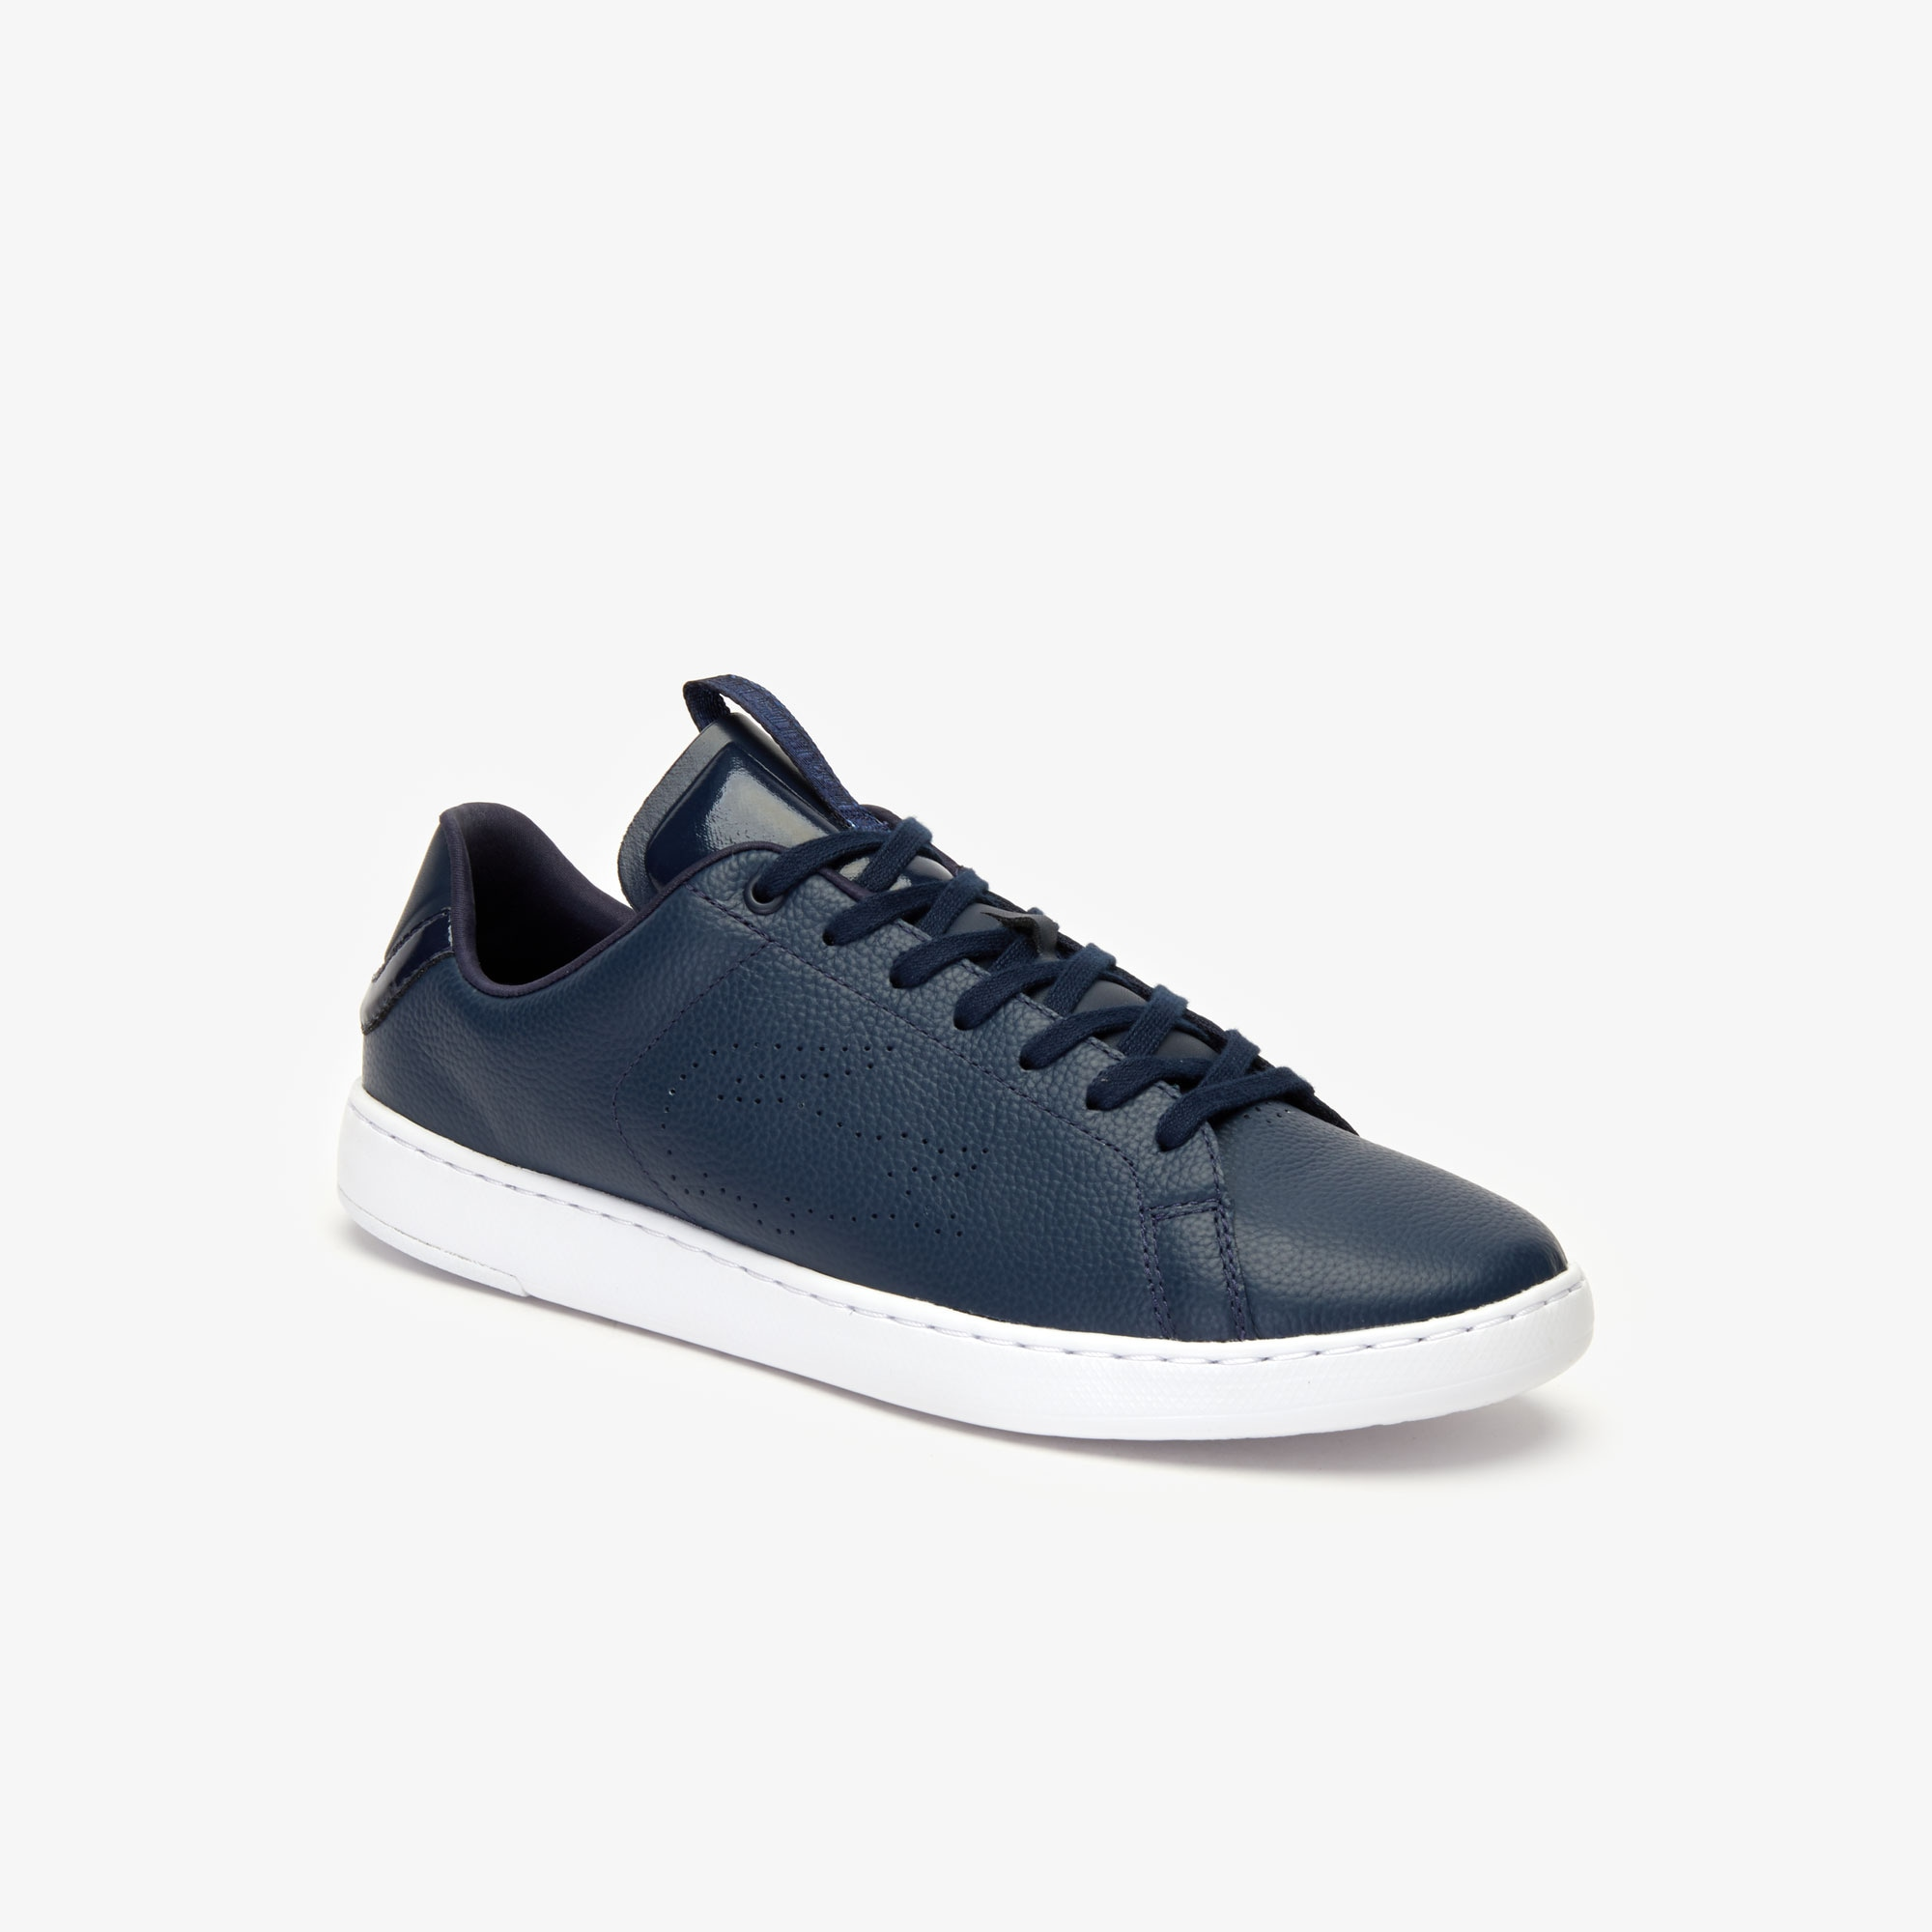 0bbada74274d Men s Carnaby Evo Lightweight Leather Trainers · + 2 colors